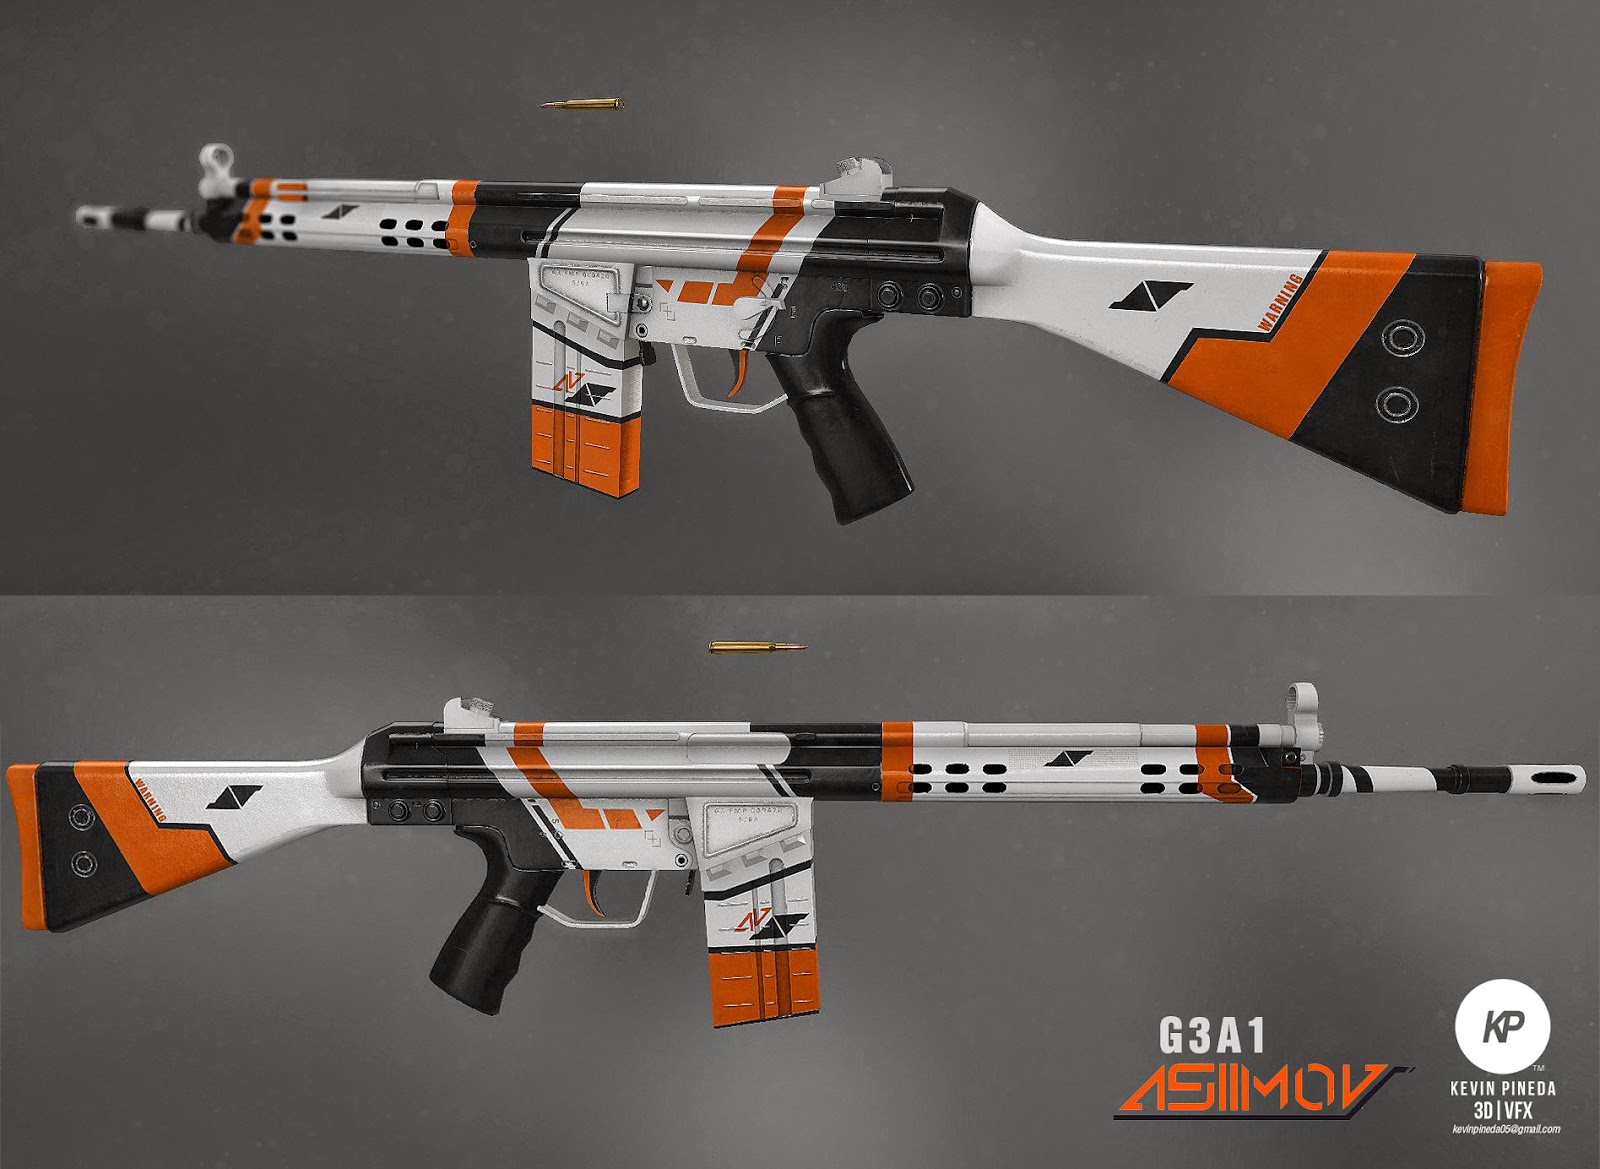 so i made a g3a1 model inspired by a popular cs go skin